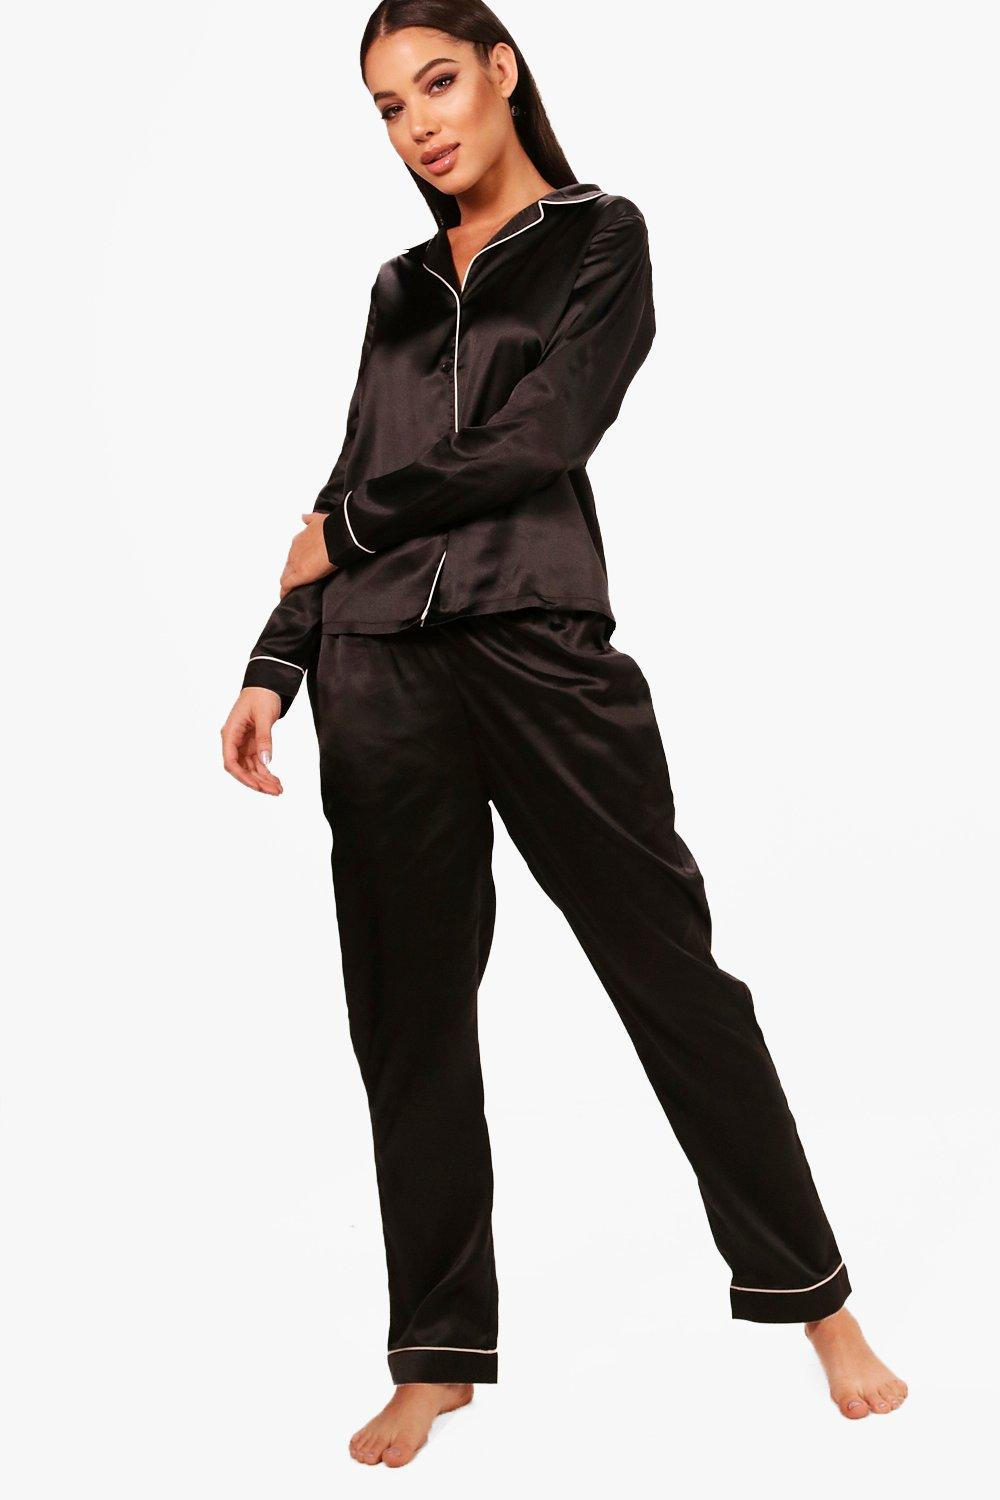 Set Trouser Satin Squad black Brides ptw76Wgpq